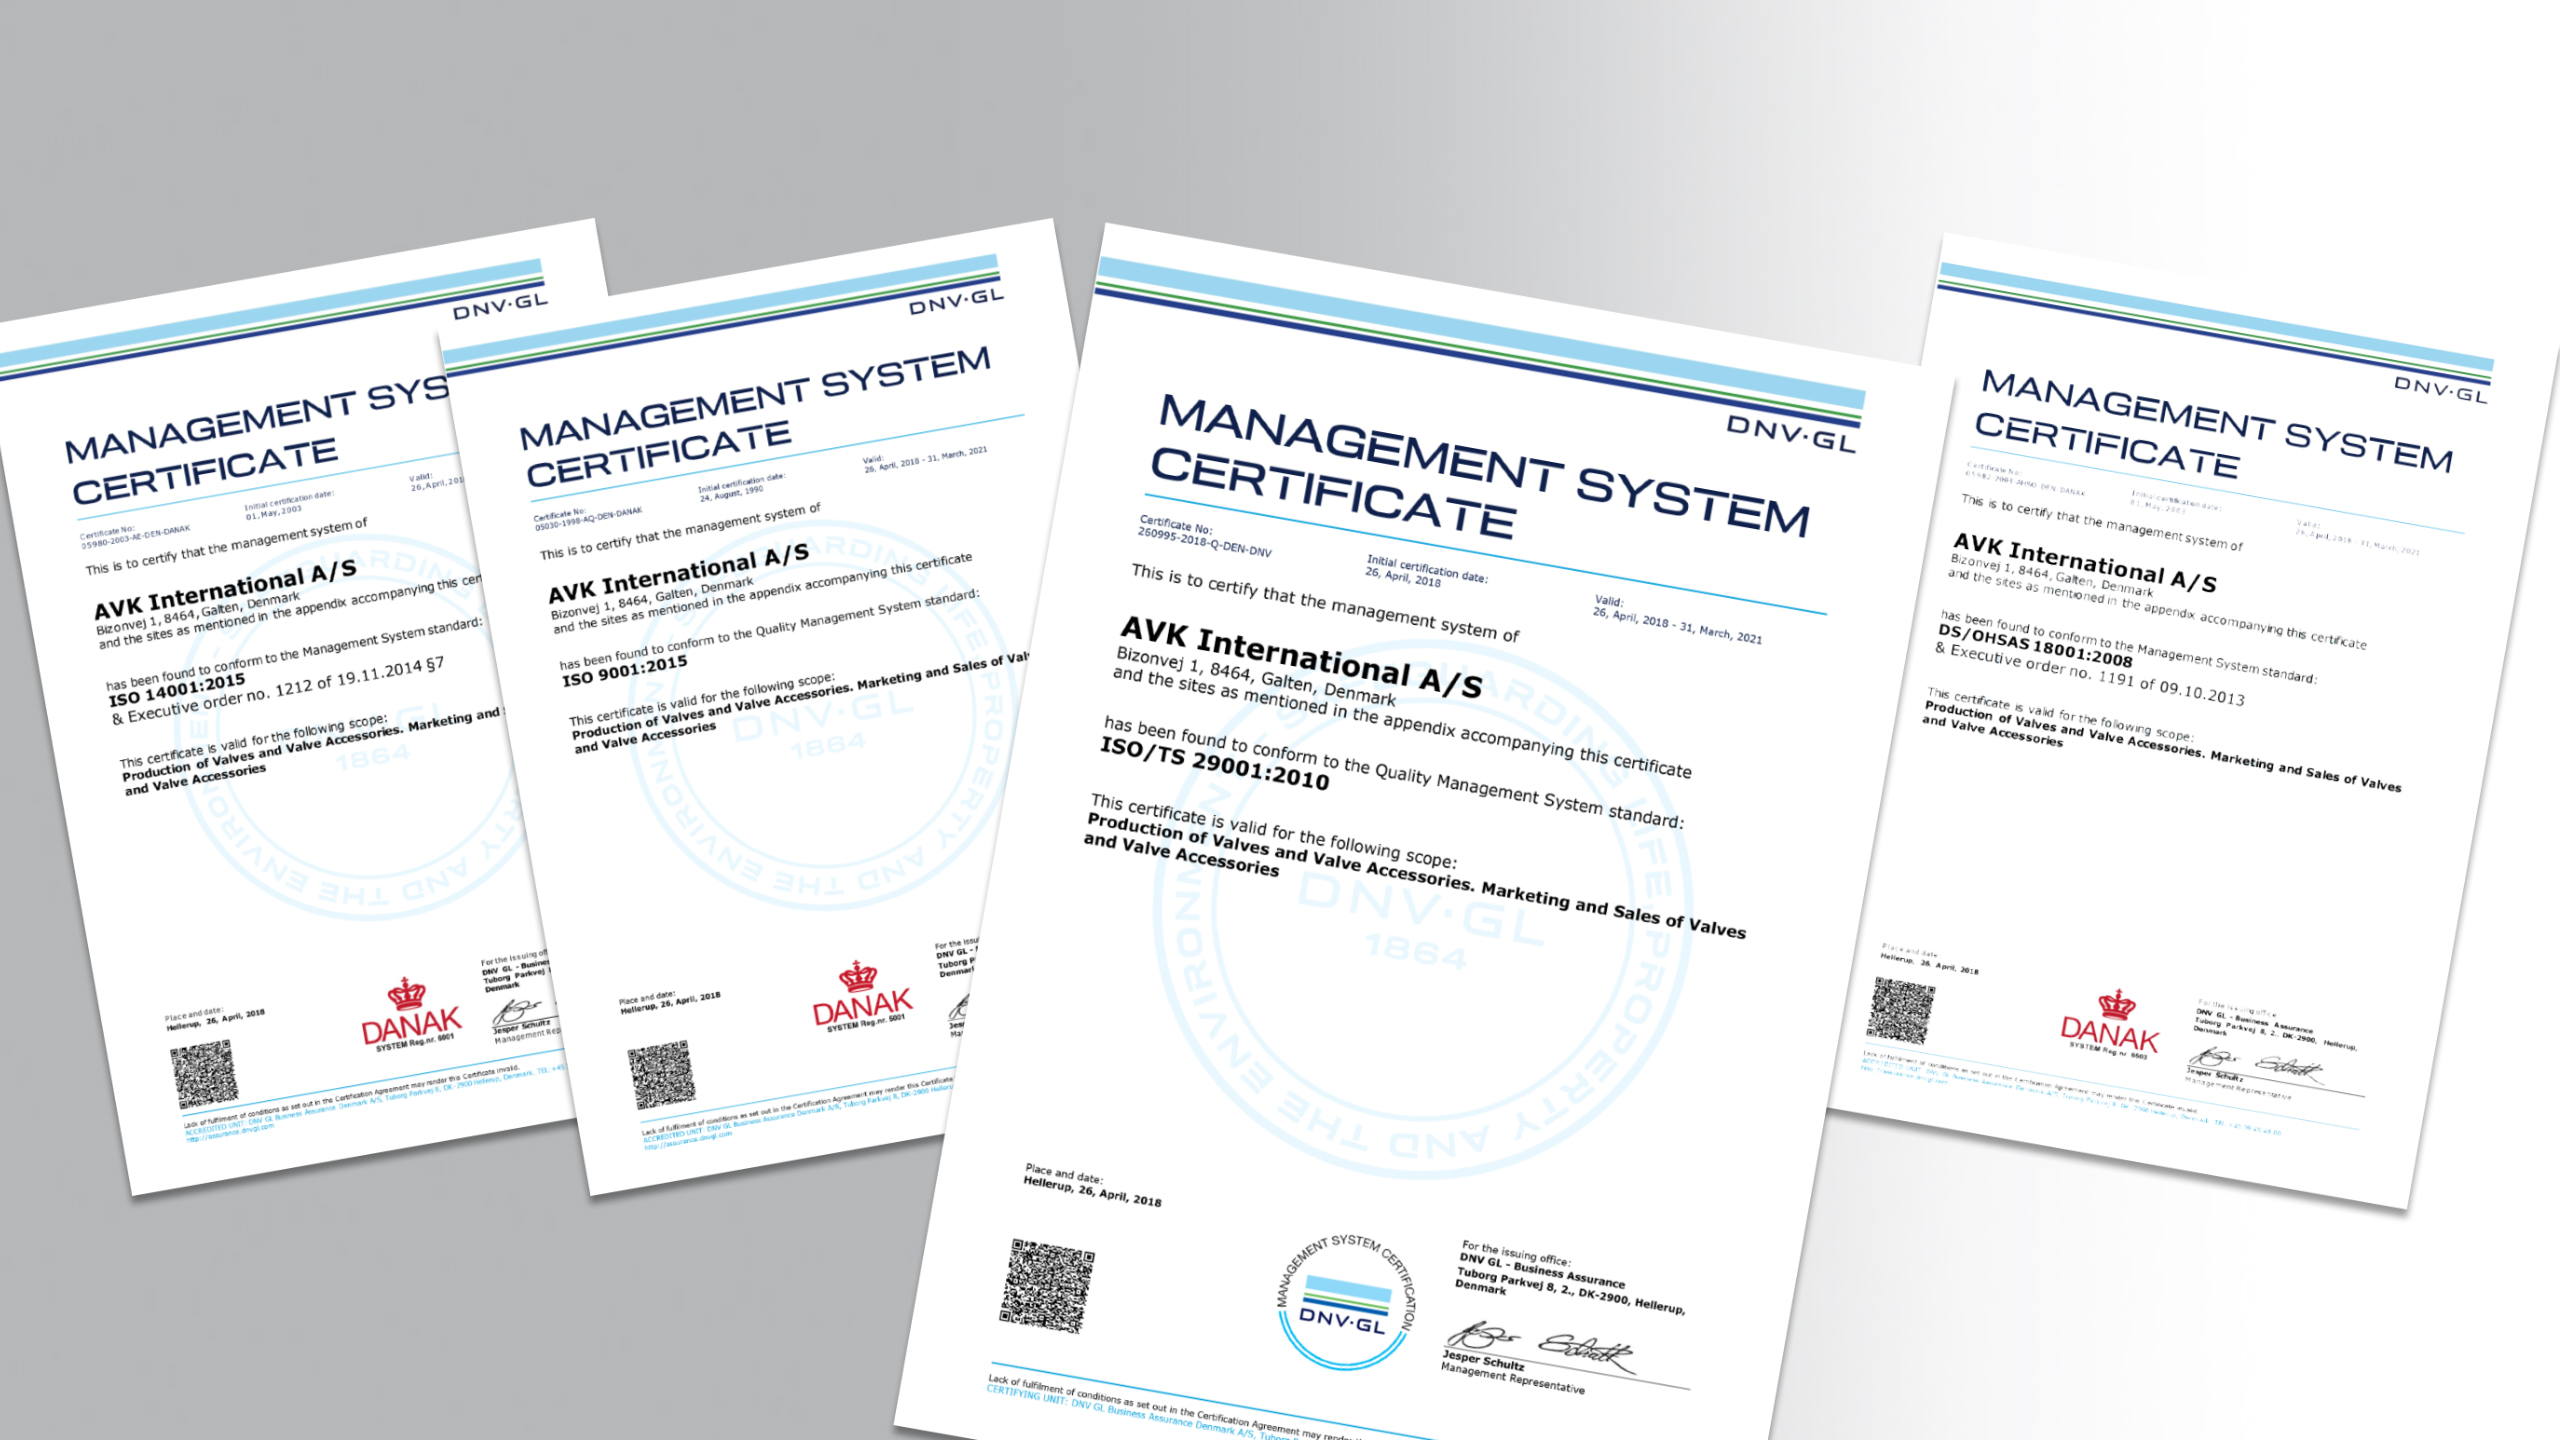 News: AVK is ISO/TS 29001 certified